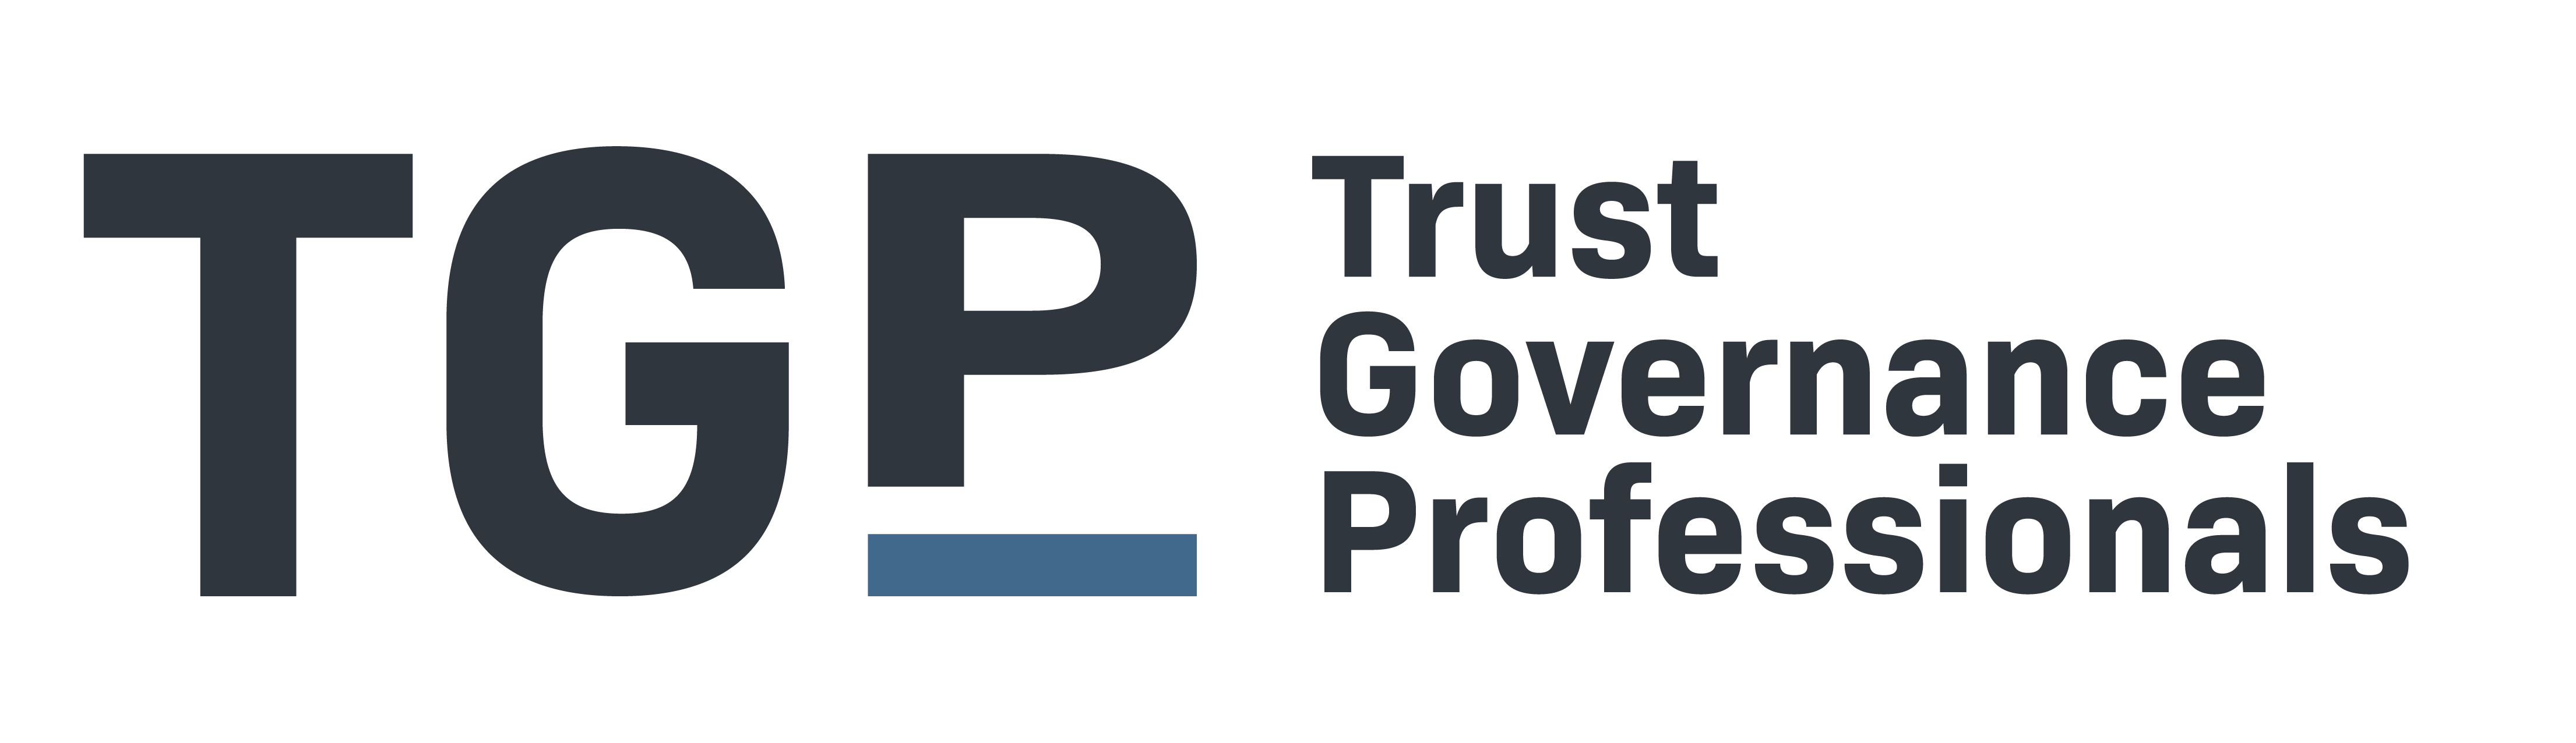 Trust Governance Professionals